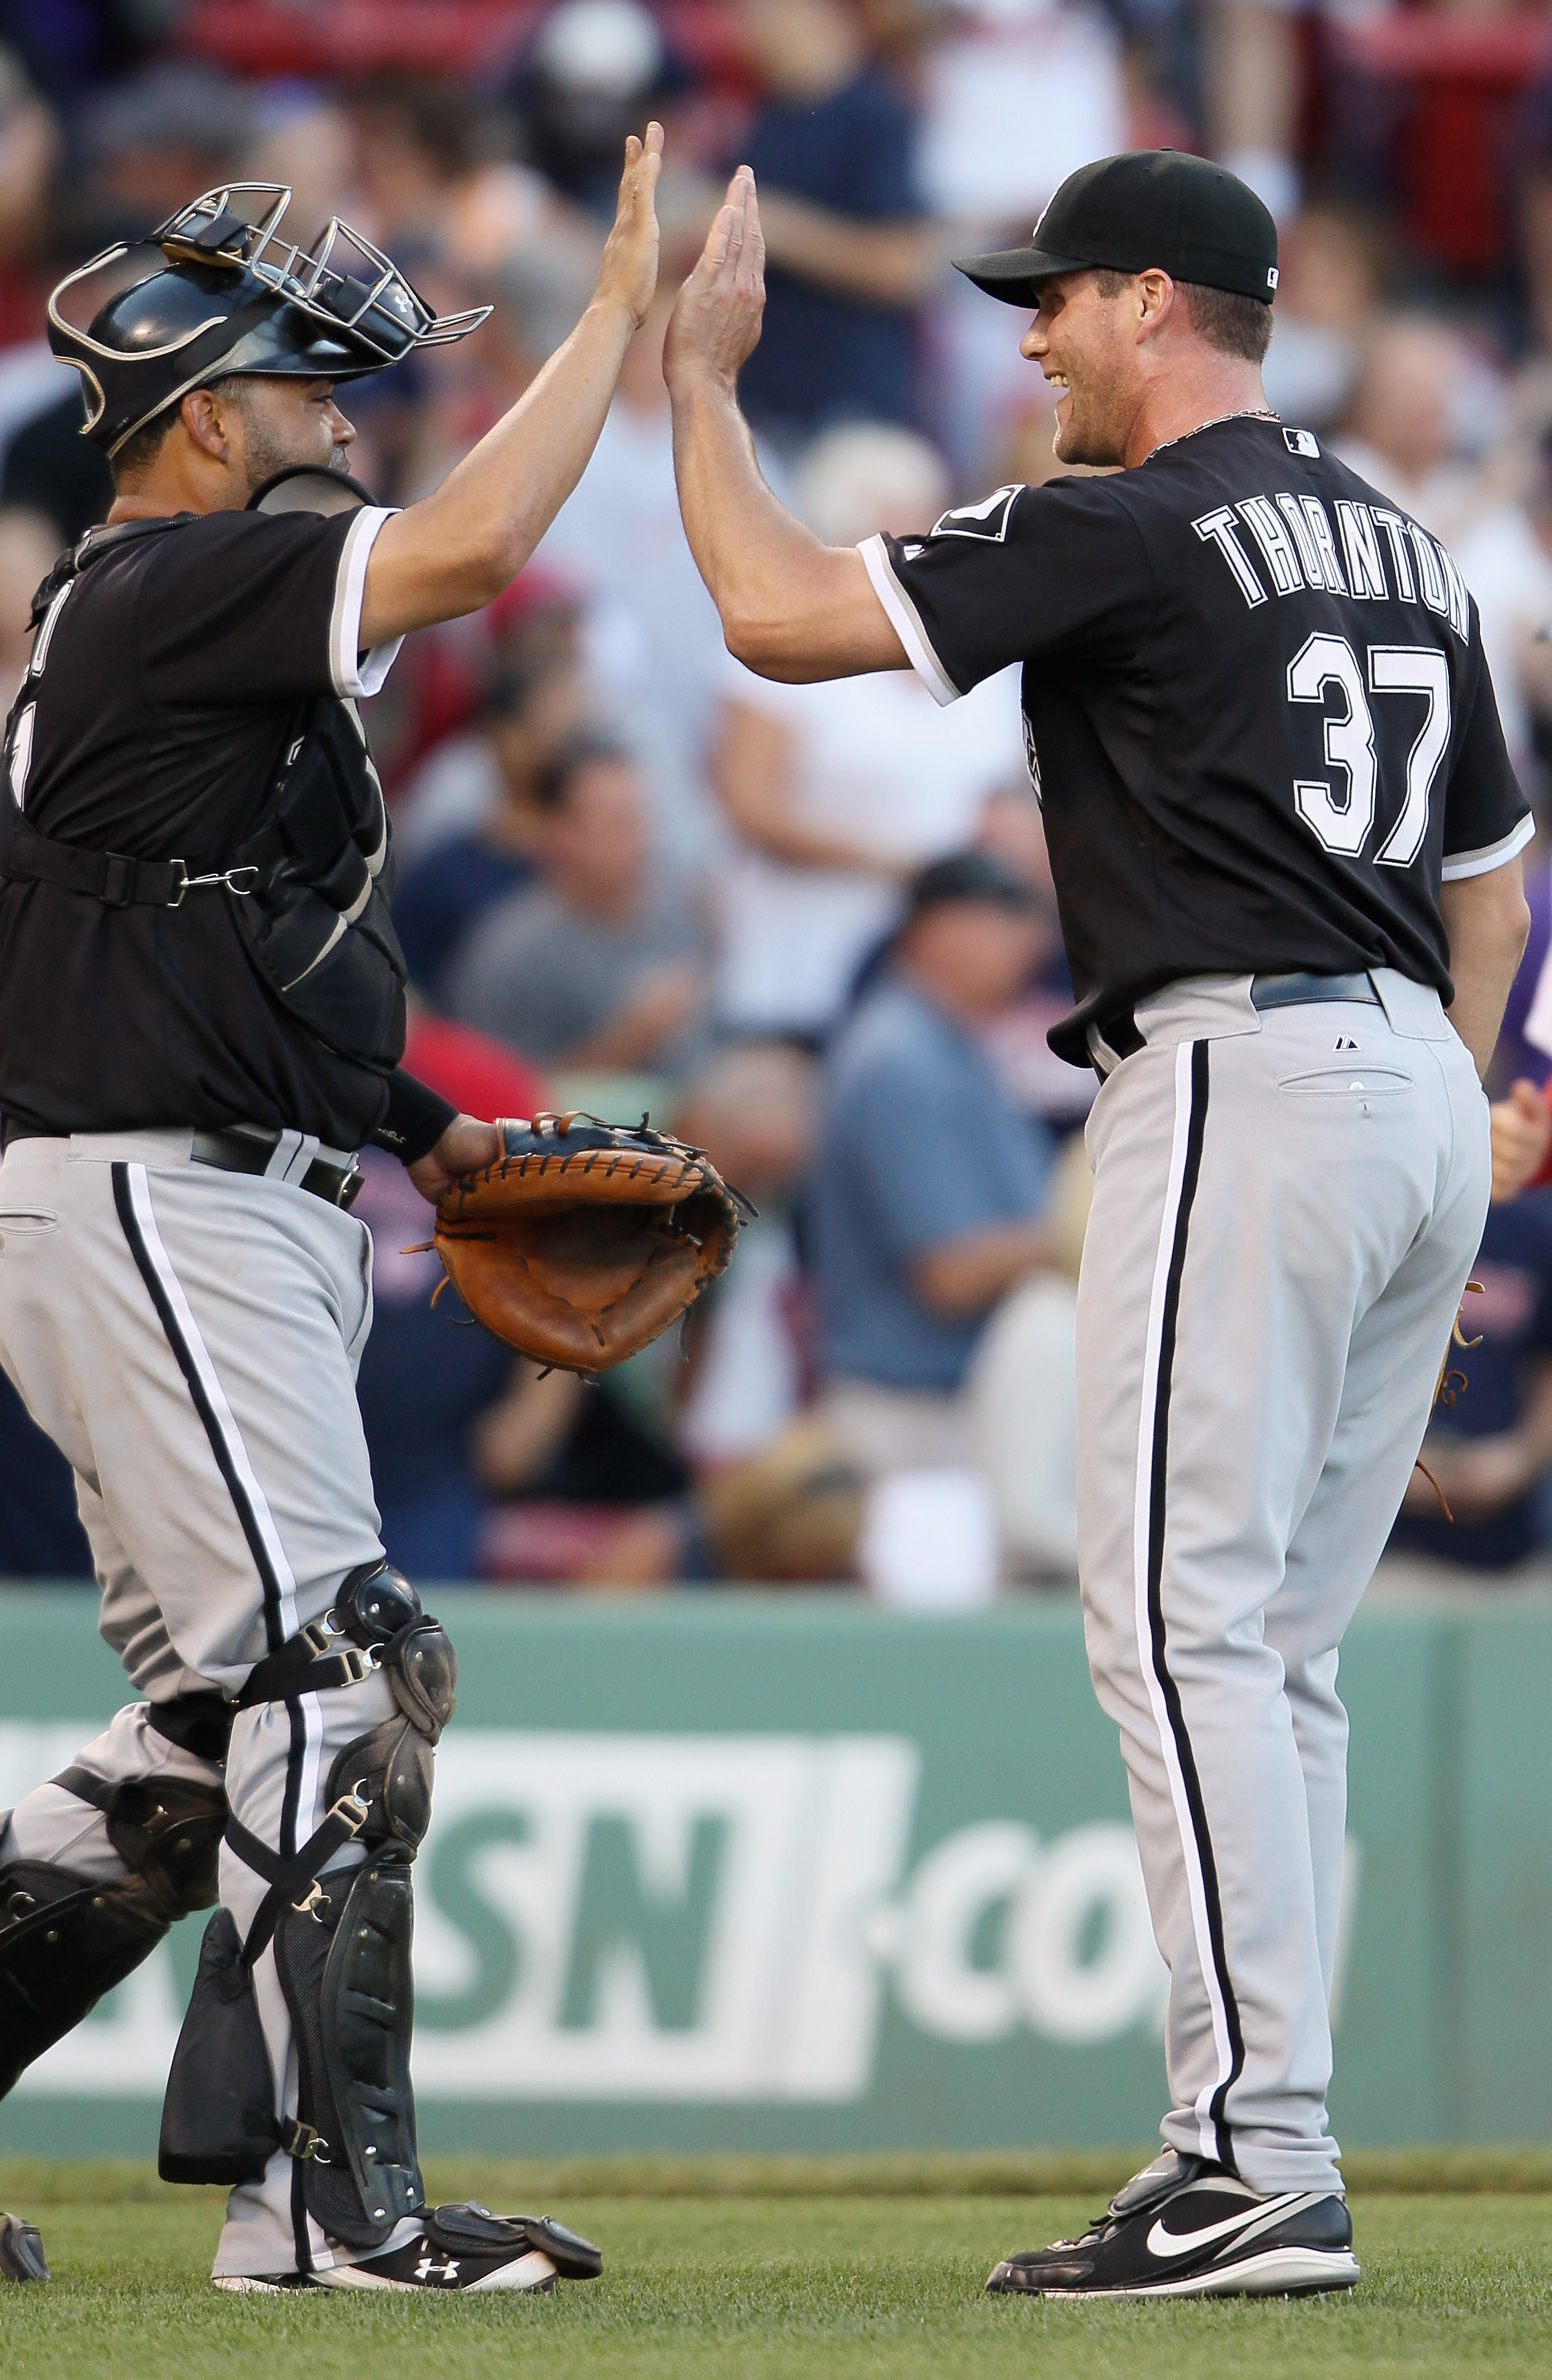 BOSTON - SEPTEMBER 05:  Matt Thornton #37 of the Chicago White Sox celebrates the win with Ramon Castro #27 on September 5, 2010 at Fenway Park in Boston, Massachusetts.The White Sox defeated the Boston Red Sox 7-5.  (Photo by Elsa/Getty Images)